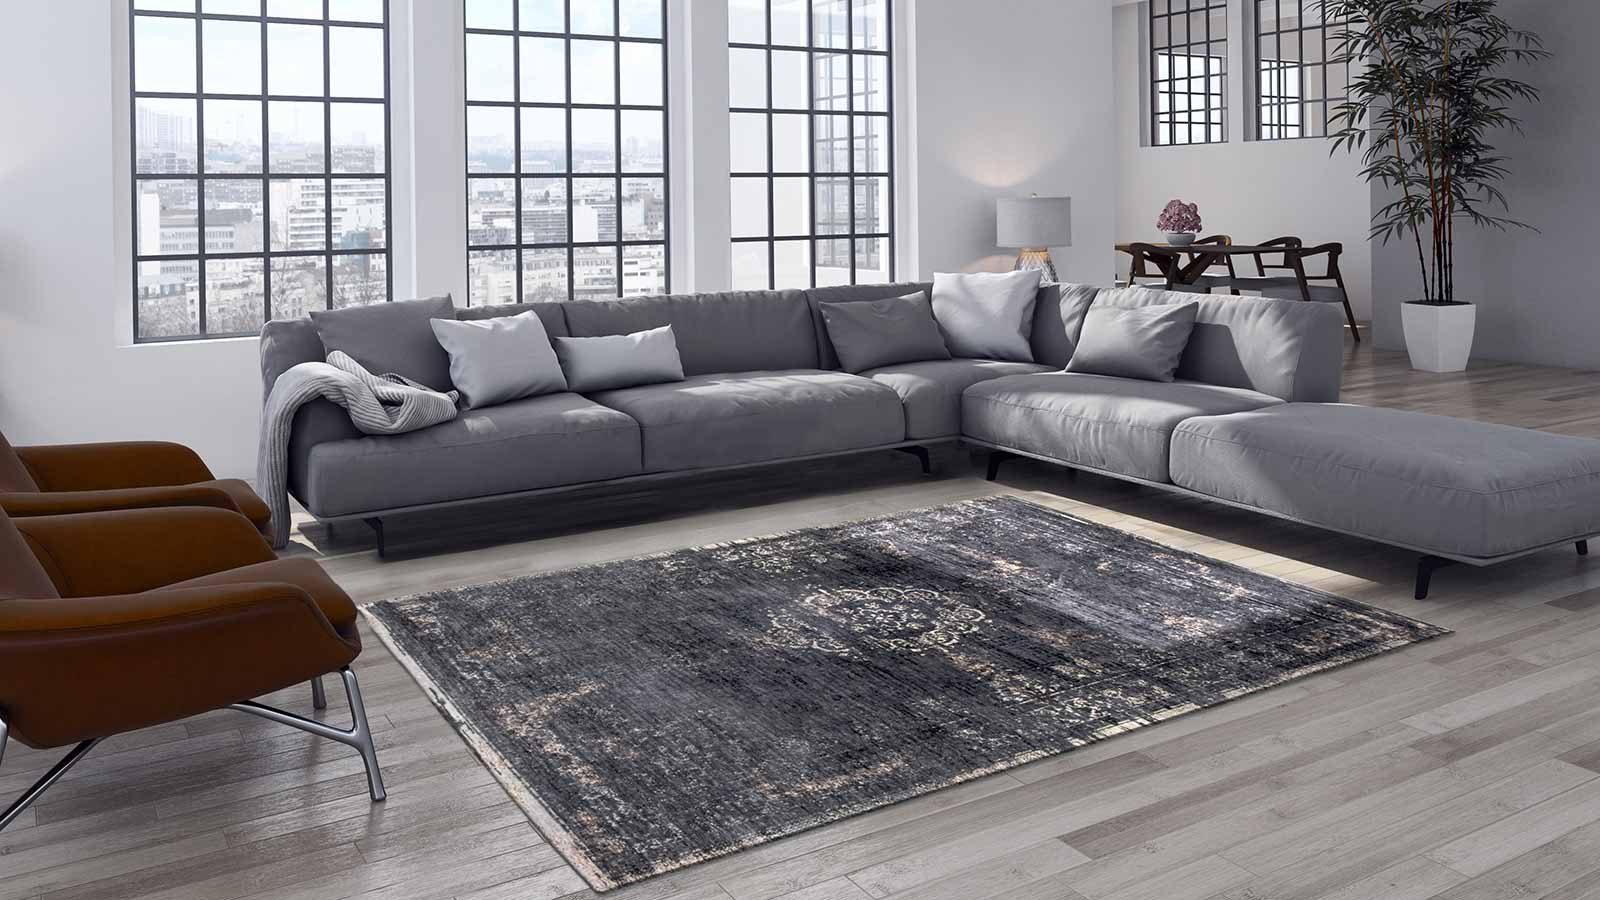 vloerkleed Louis De Poortere LX8263 Fading World Medaillon Mineral Black interior 2